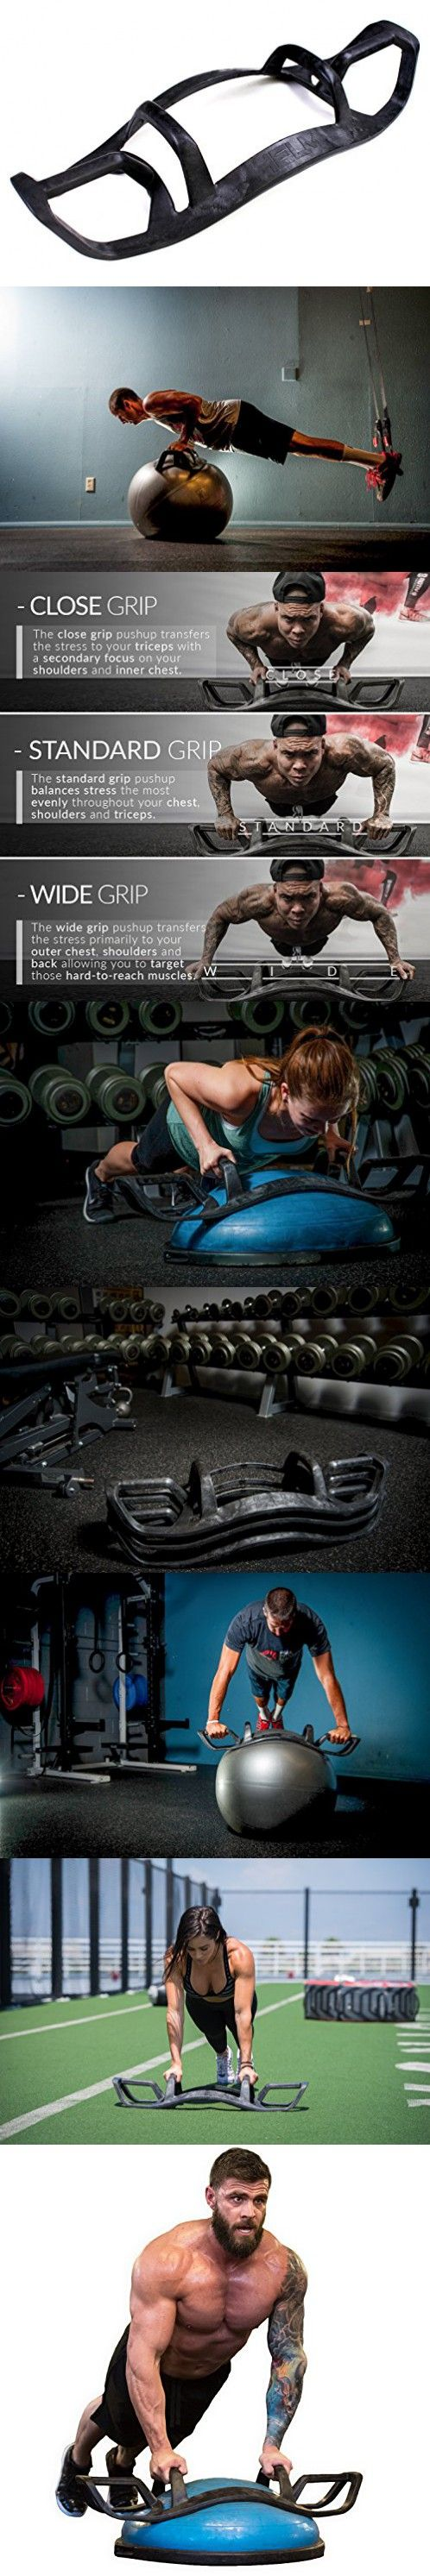 The HELM Core Fitness Strength Training System - Multi Grip